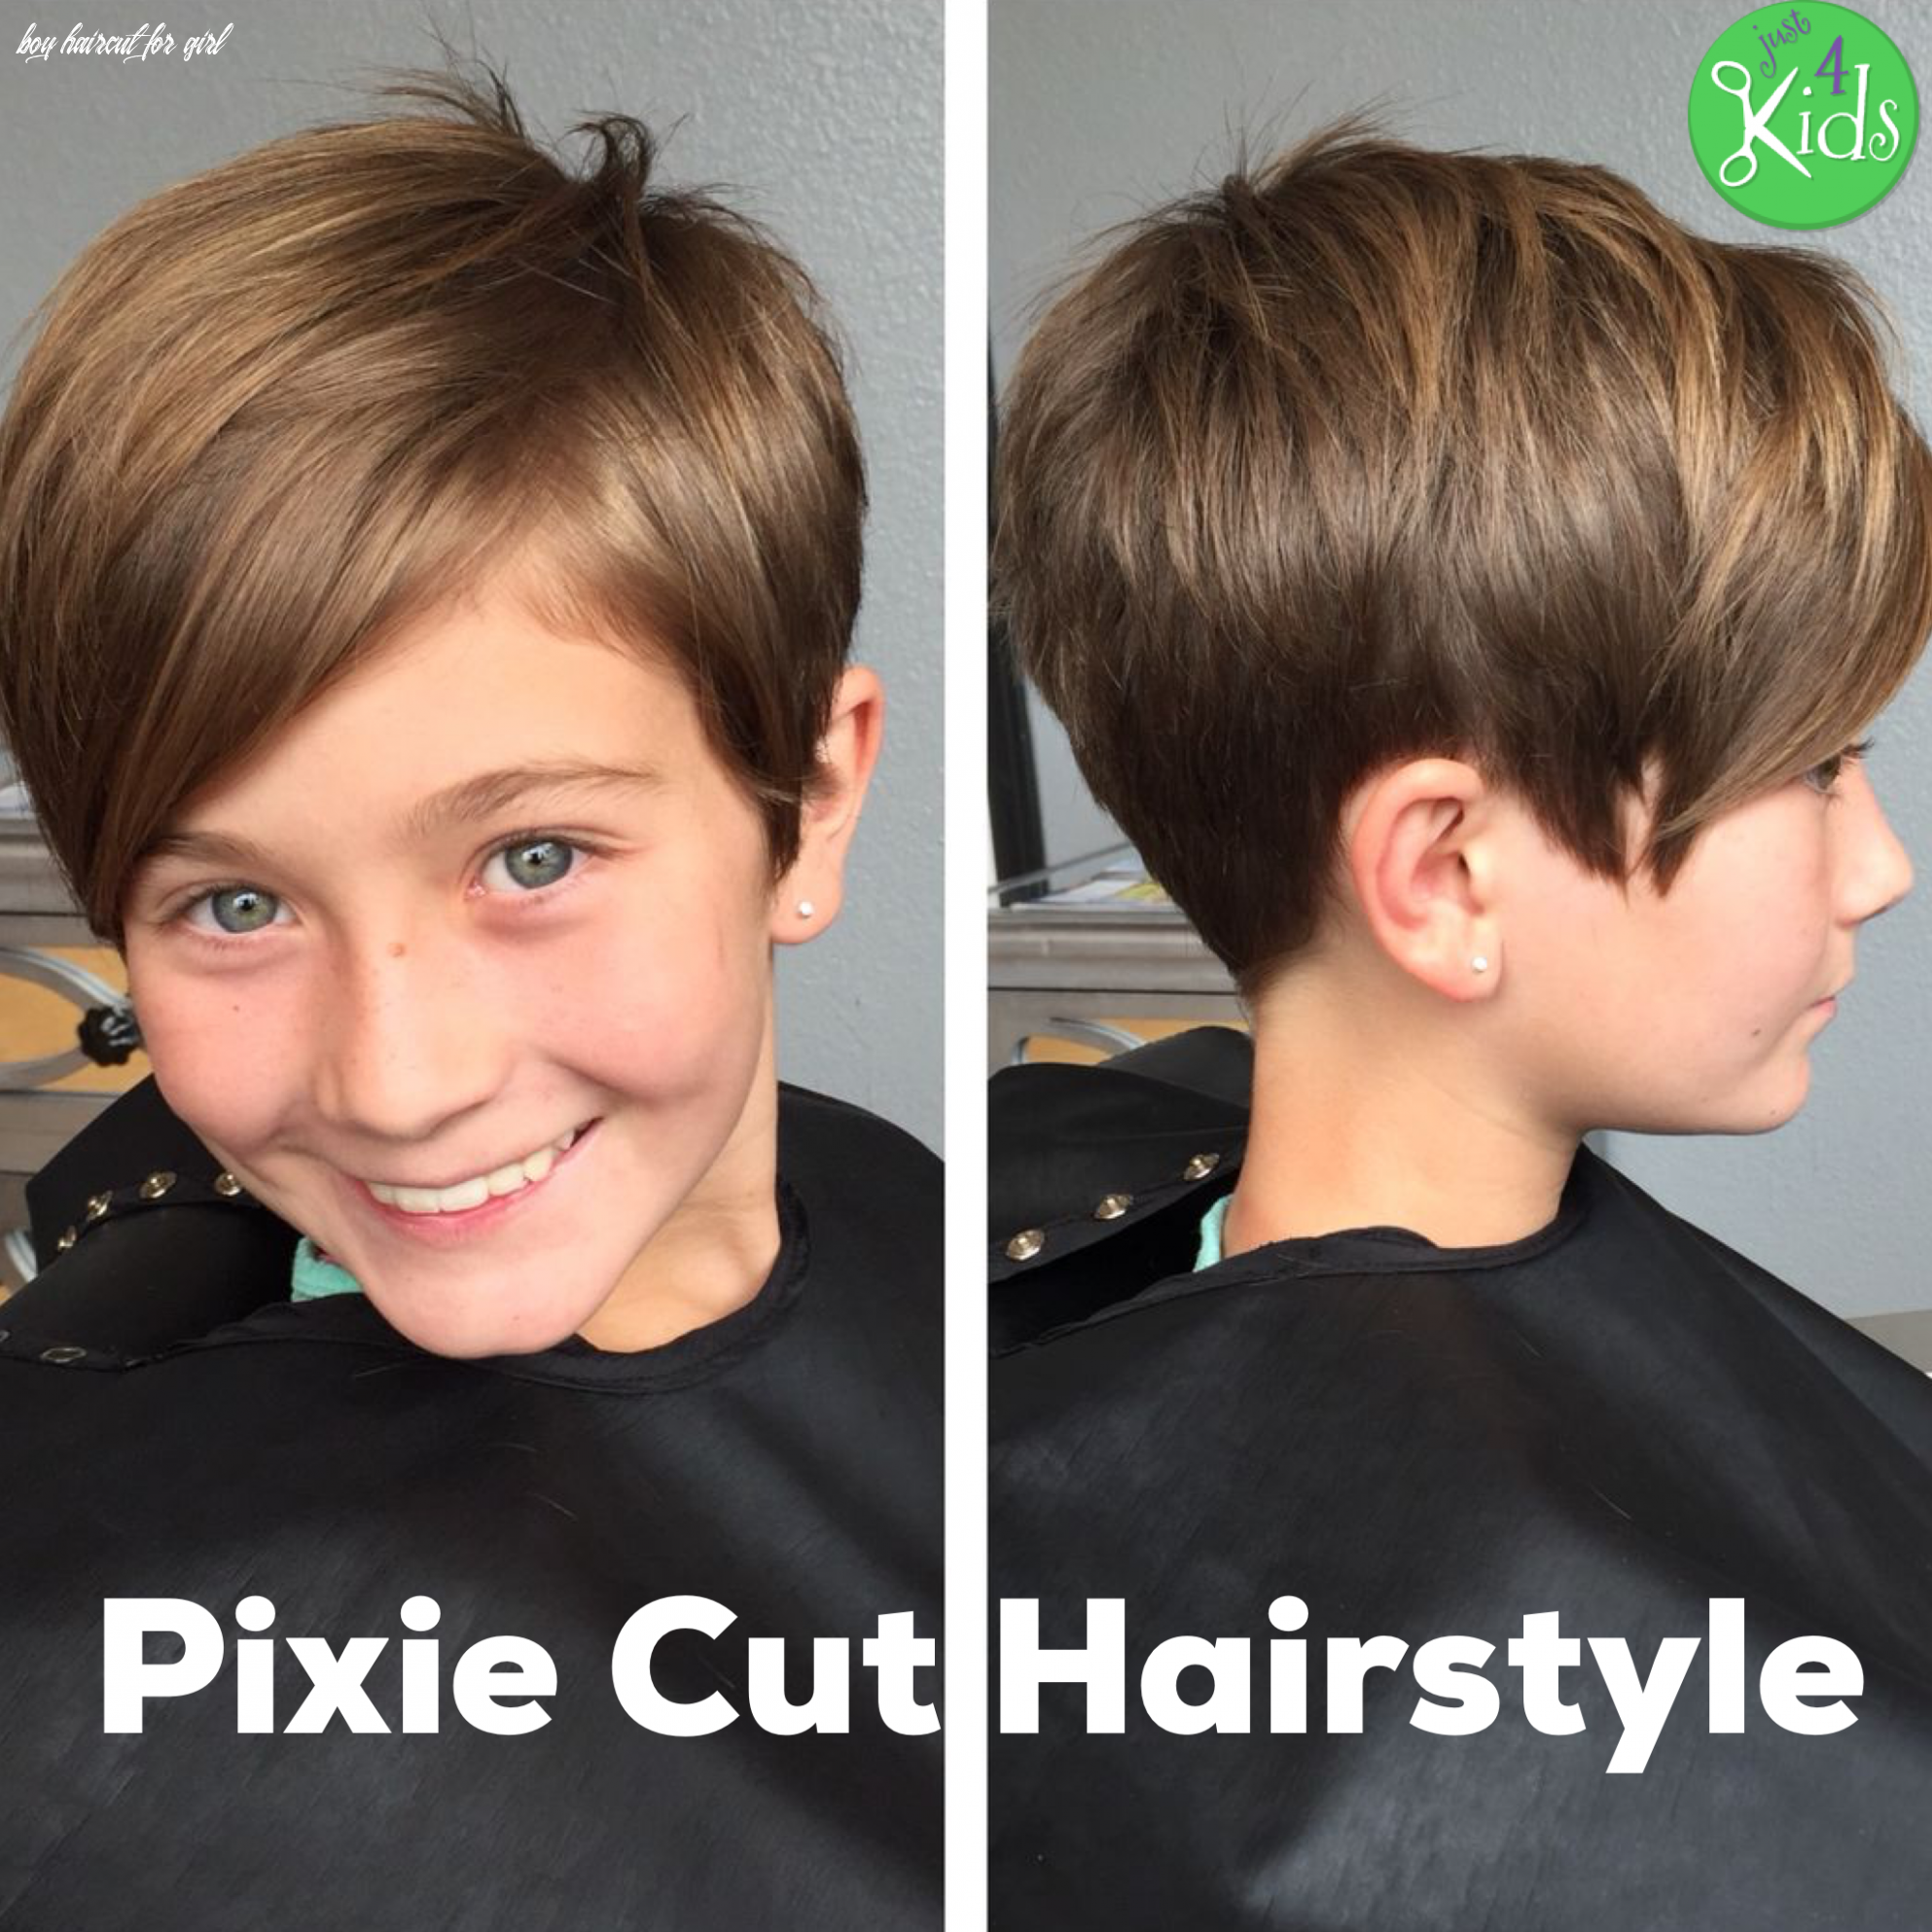 9 Boy Haircut For Girl In 2020 Kids Girl Haircuts Girls Short Haircuts Kids Short Hair For Kids